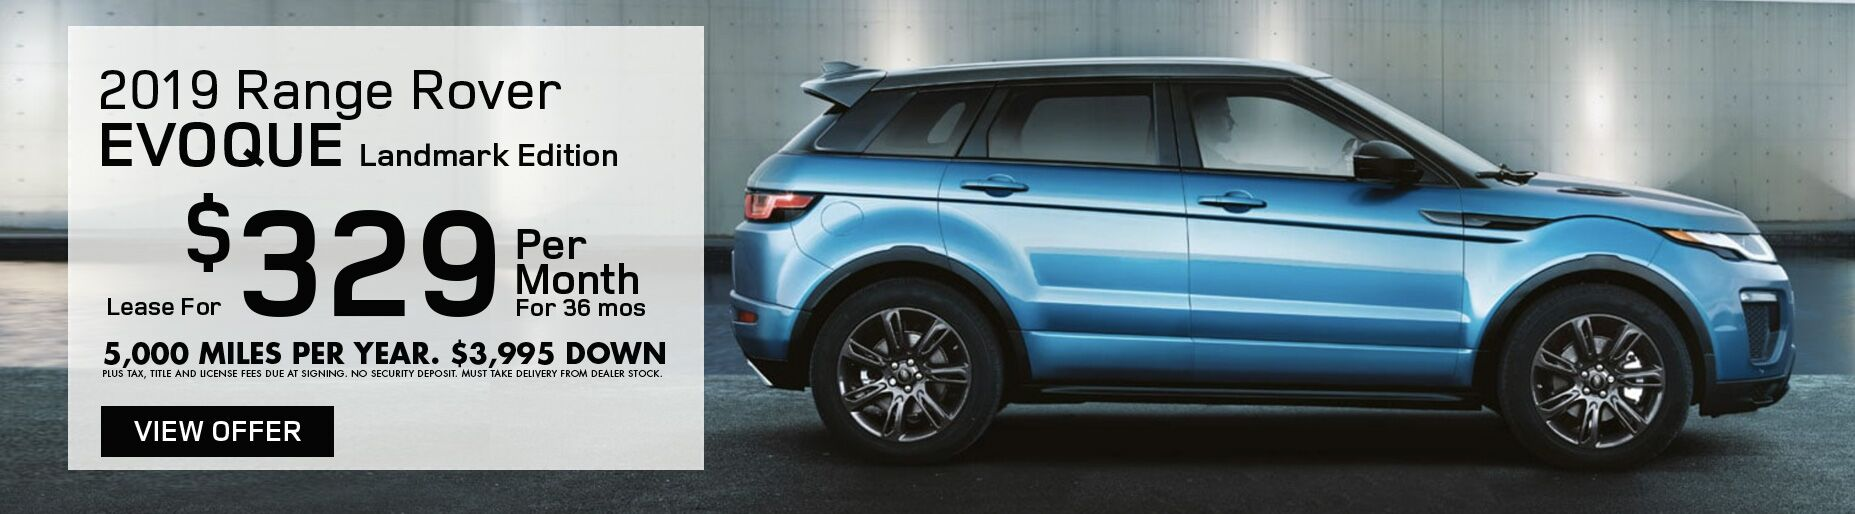 Range Rover Dealers In Ma >> Land Rover Dealership Warwick Ri Used Cars Land Rover Warwick